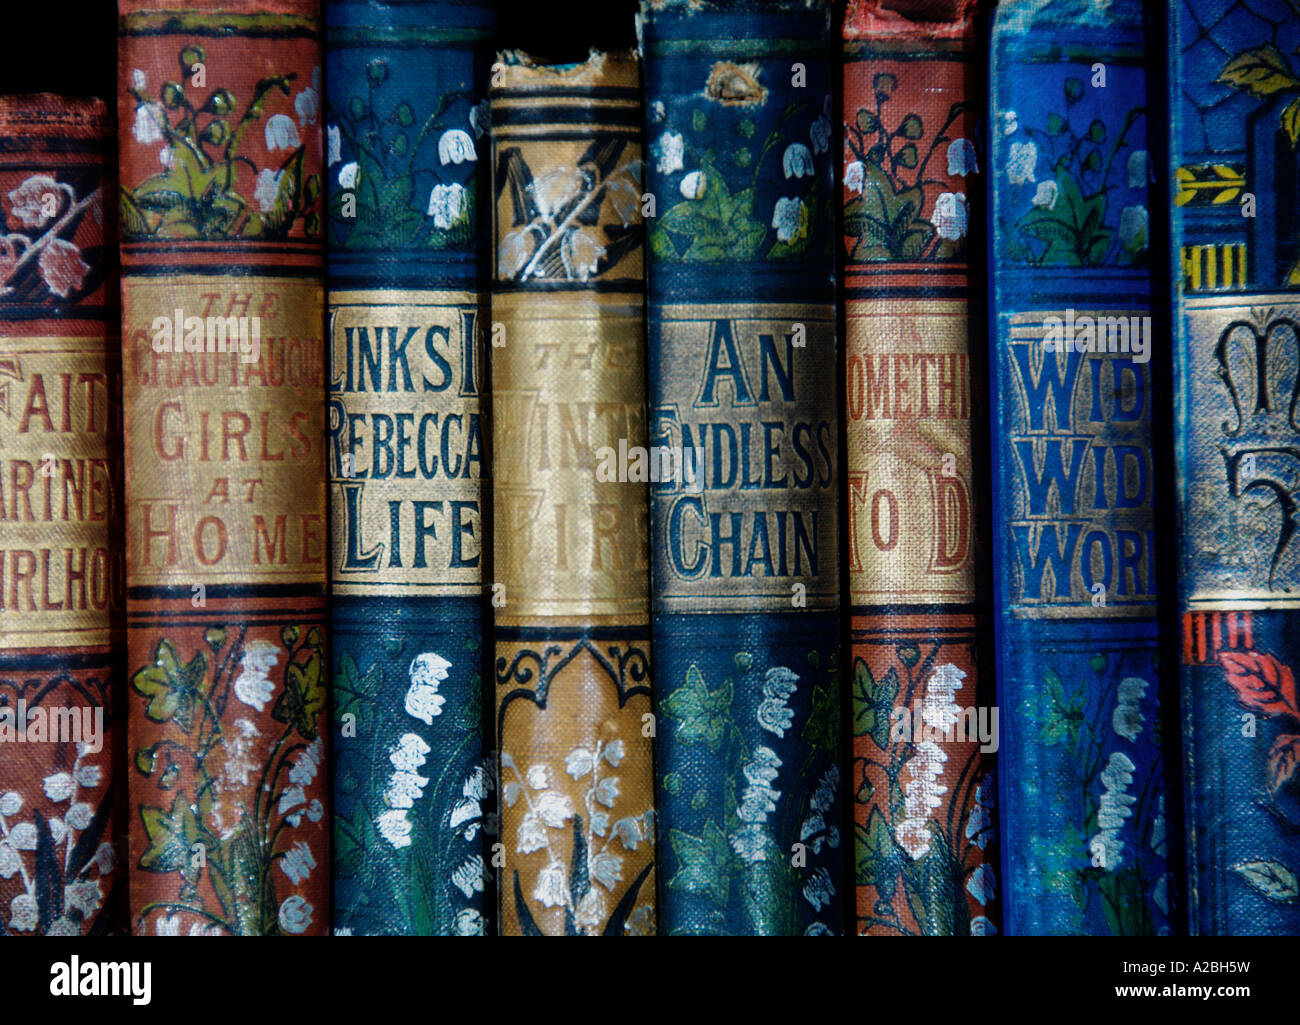 Old books antique Lilac Series Novels 1890s EDITORIAL USE ONLY - Stock Image